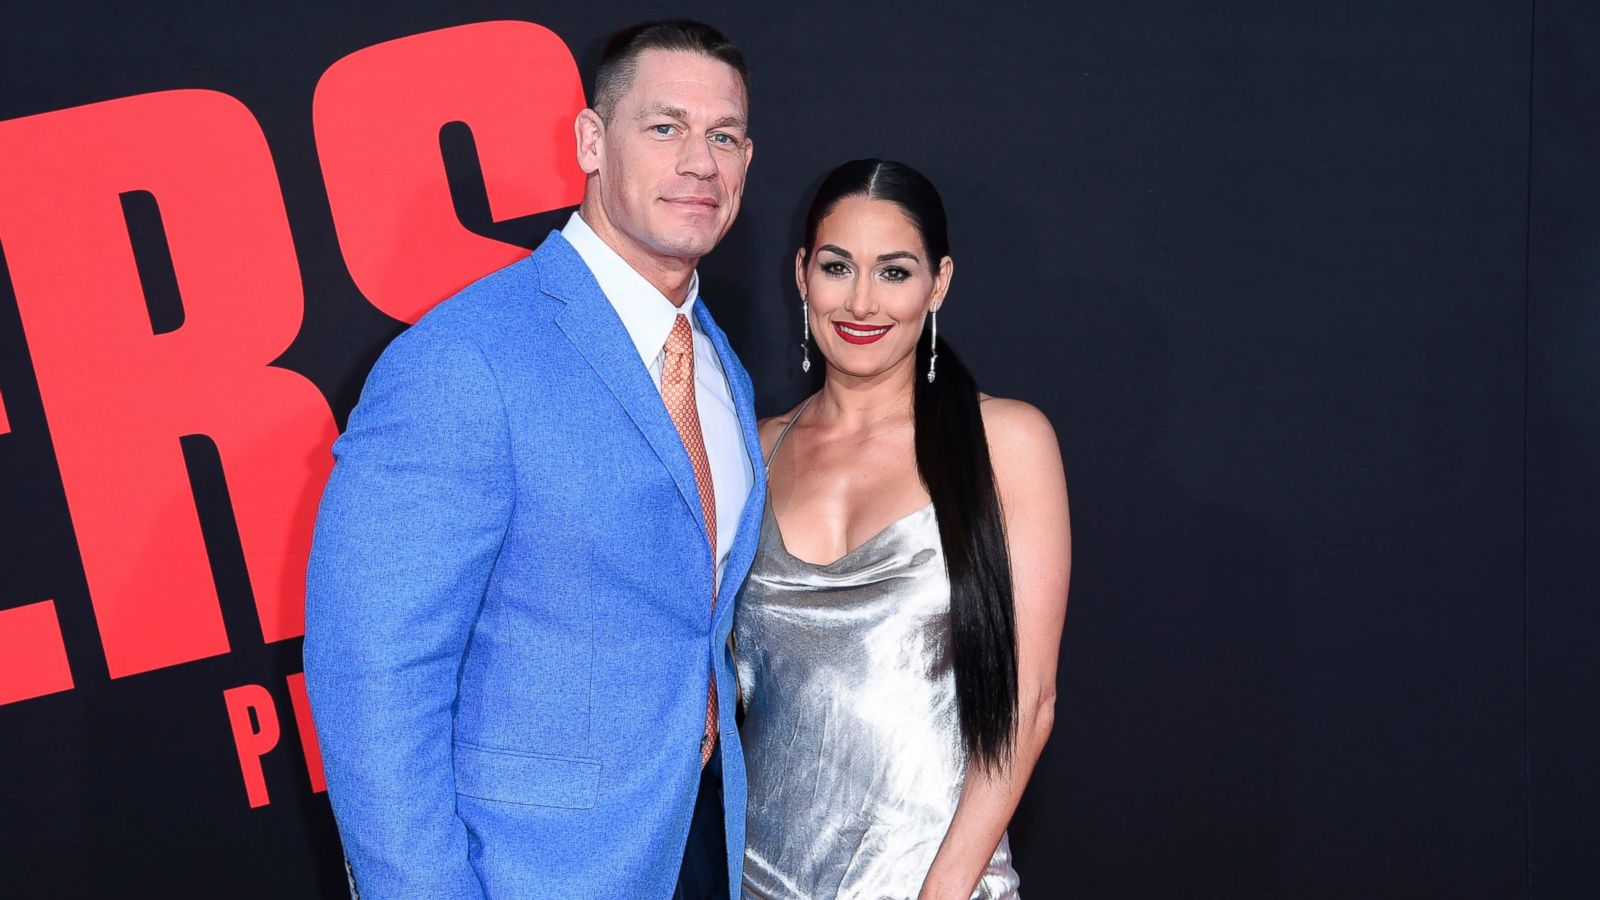 John cena opens up about split from nikki bella it sucks abc news m4hsunfo